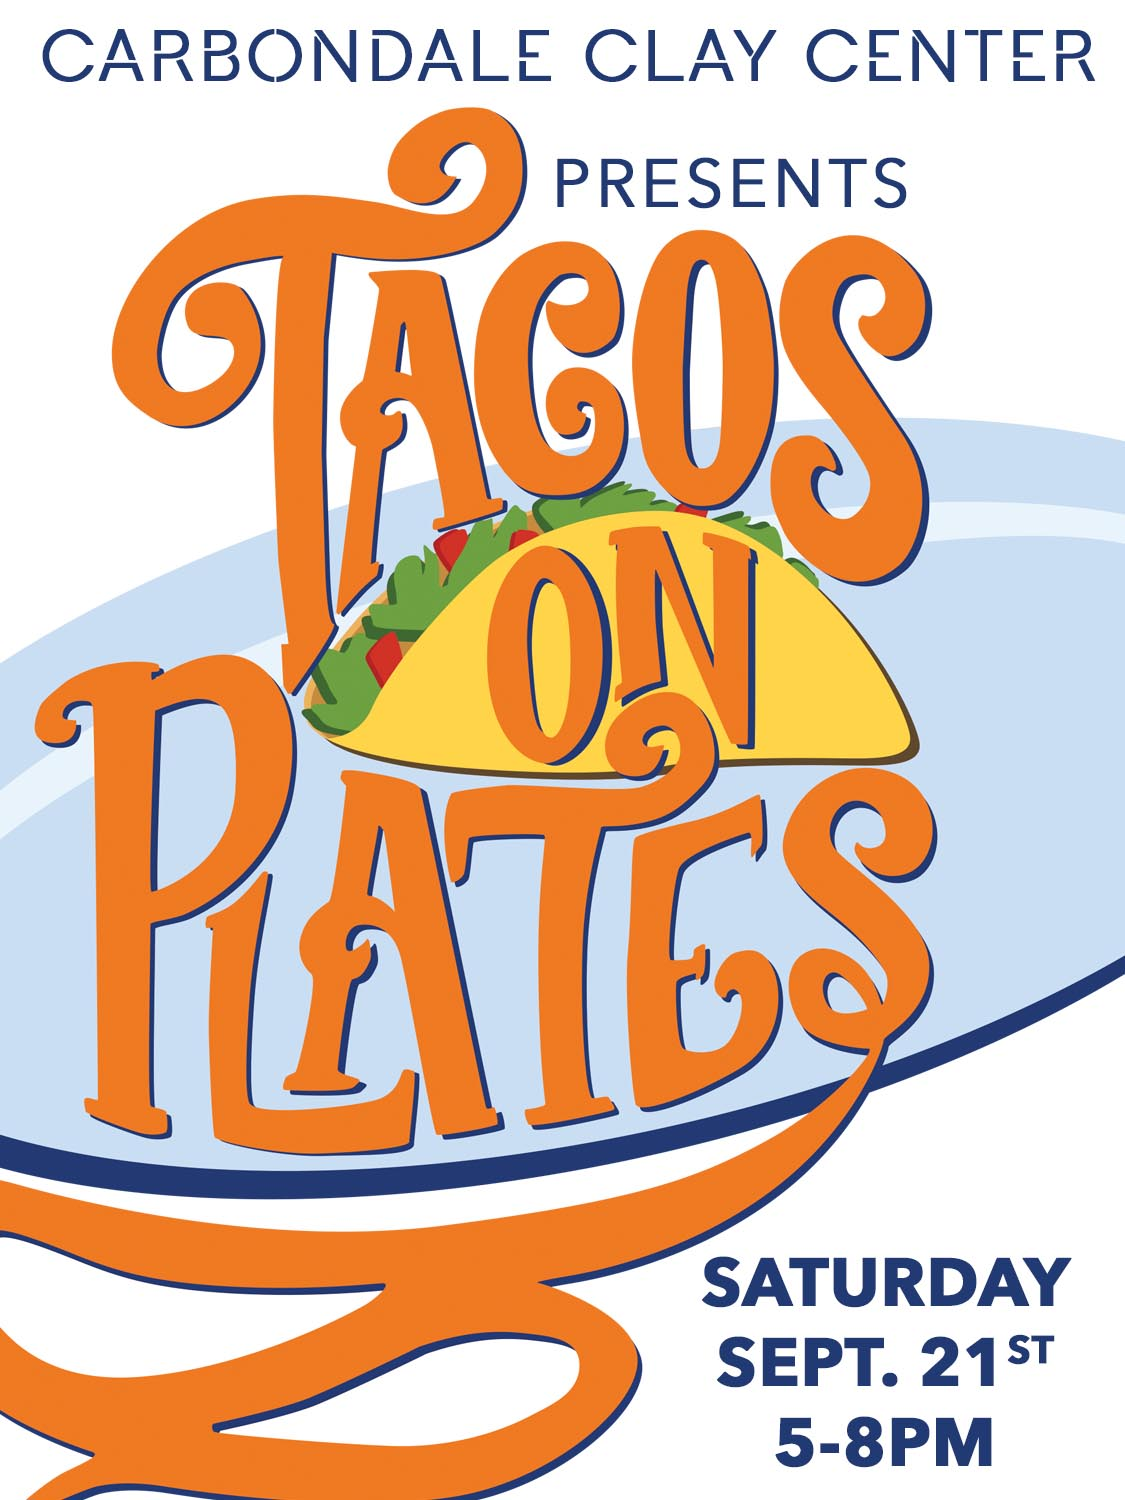 tacos on plates save the date single.jpg